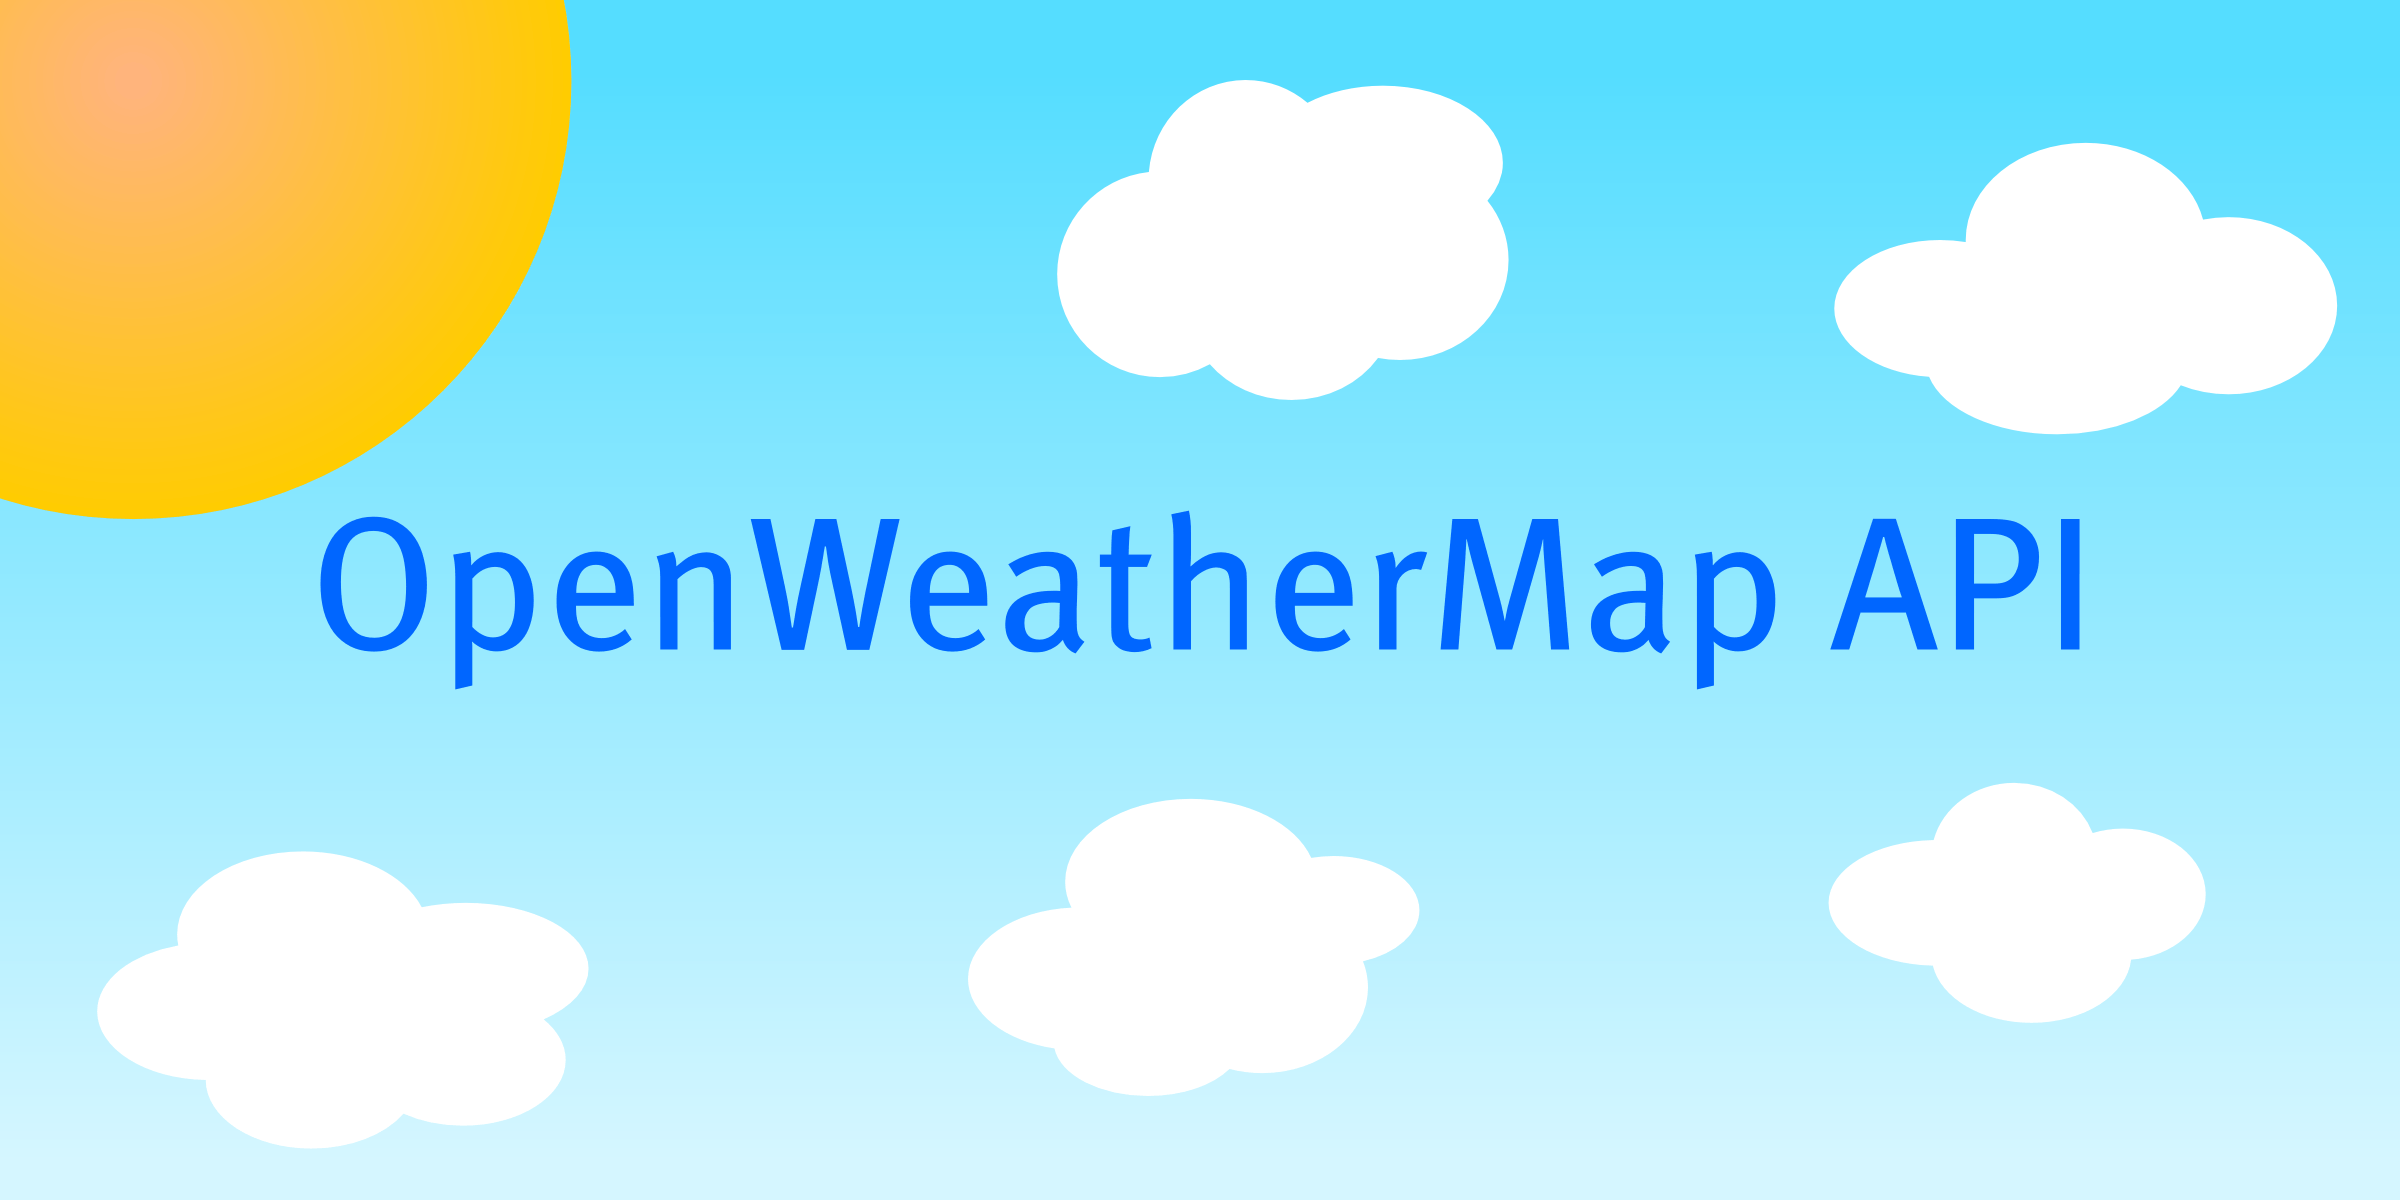 Build a small backend for your weather assistant in Javascript